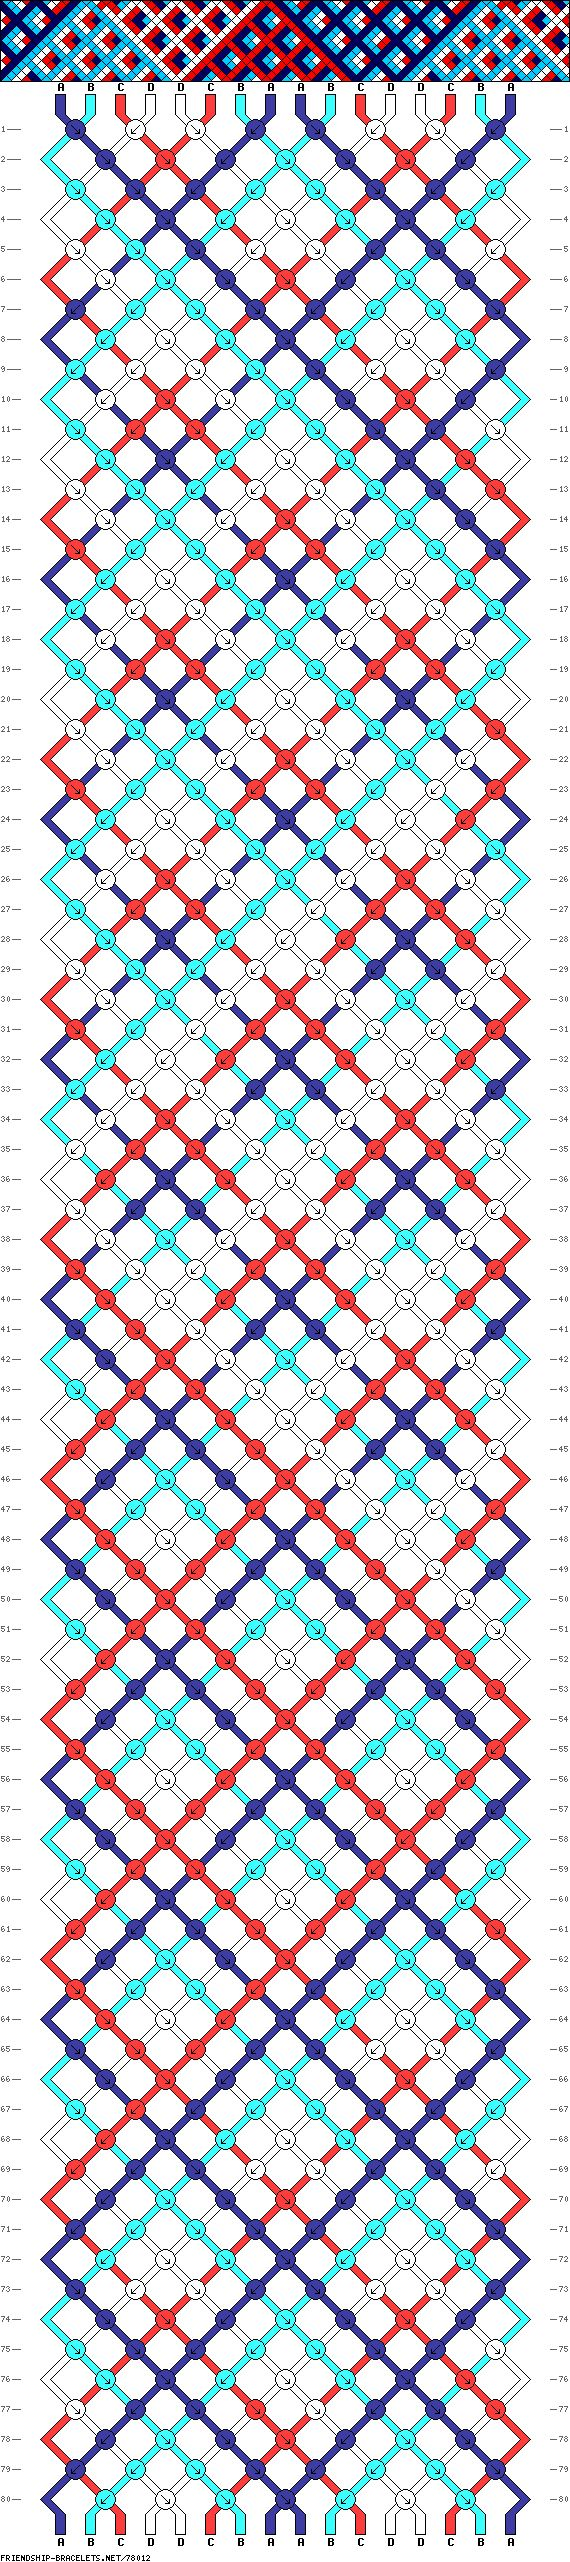 Crossover pattern - really nice looking when finished